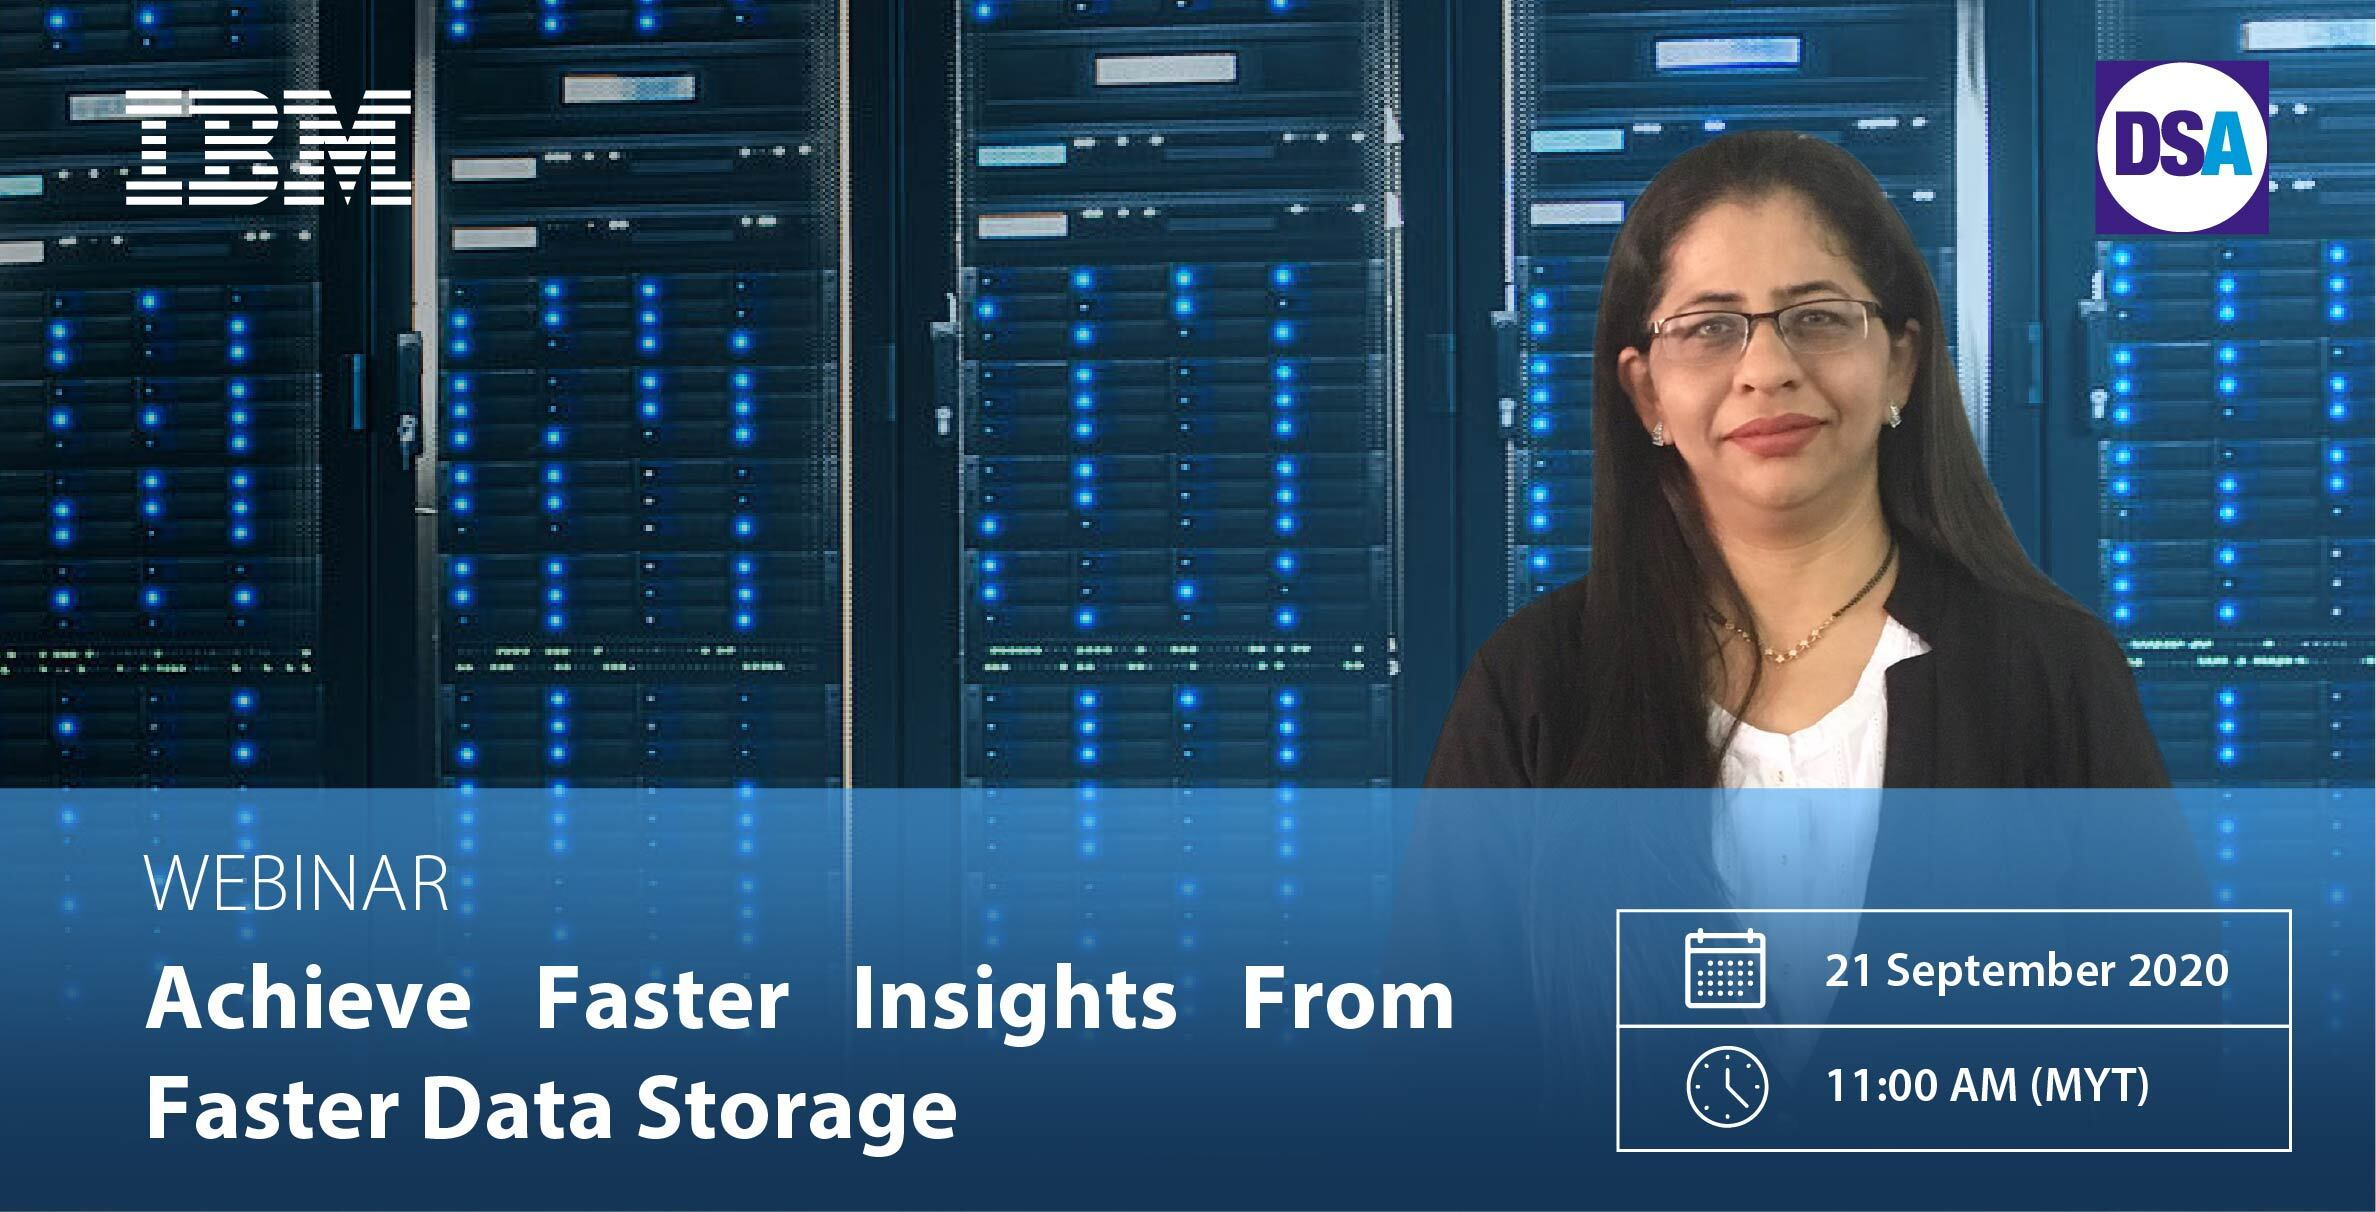 ATTND IBM Webinar 2: Achieve Faster Insights From Faster Data Storage.